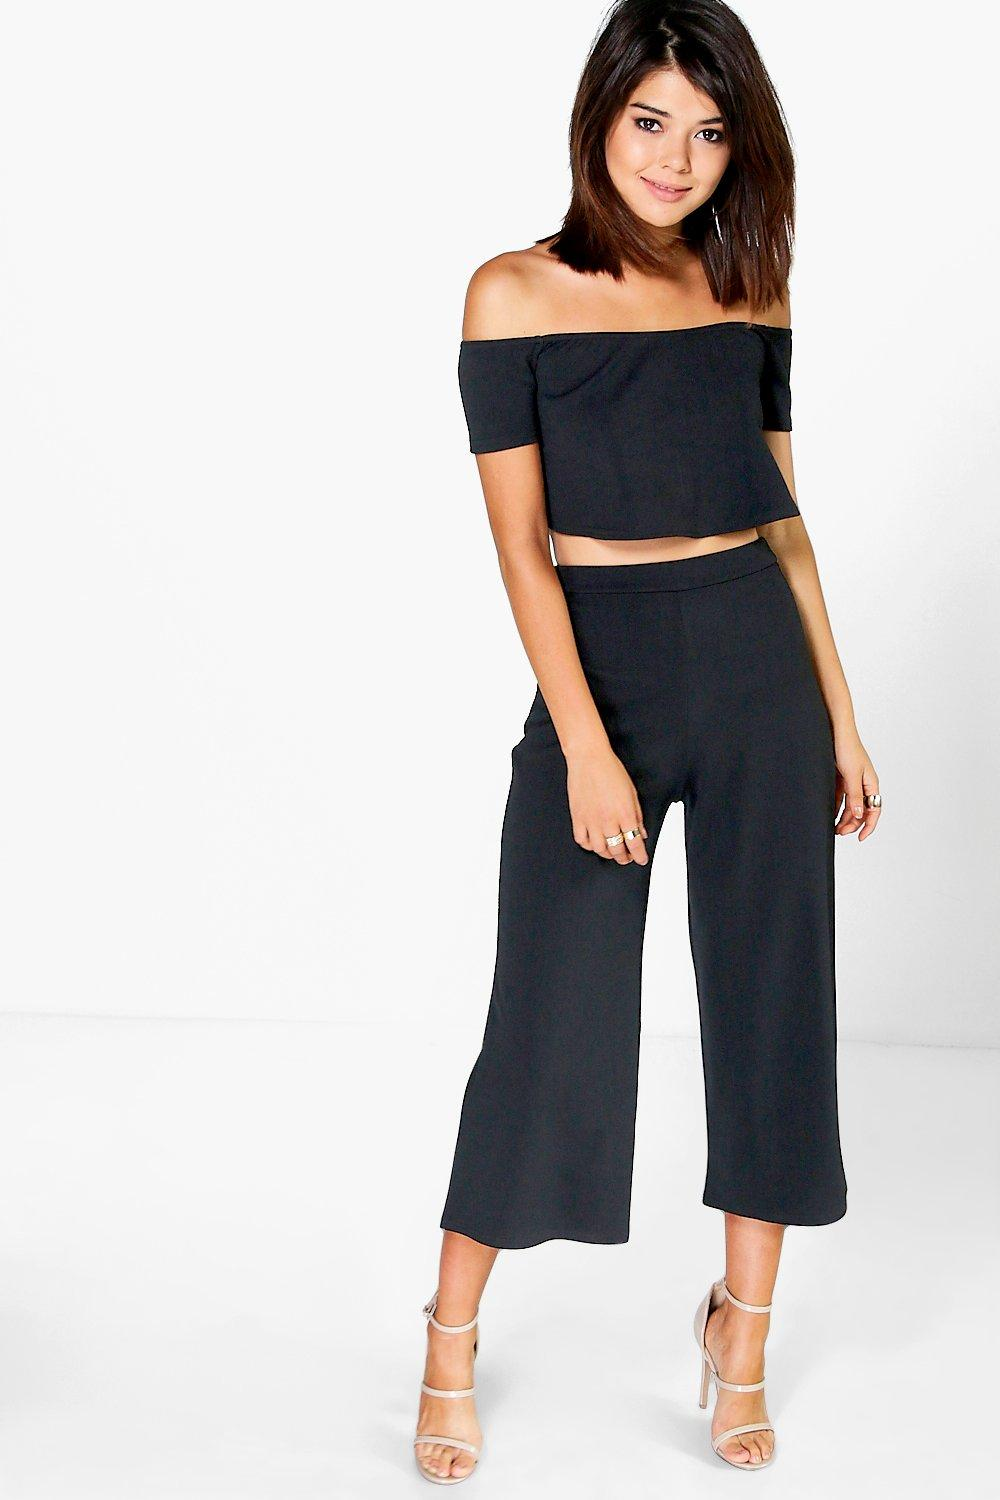 95215ef764c837 Womens Black Off The Shoulder Top And Culotte Co-Ord Set. Hover to zoom